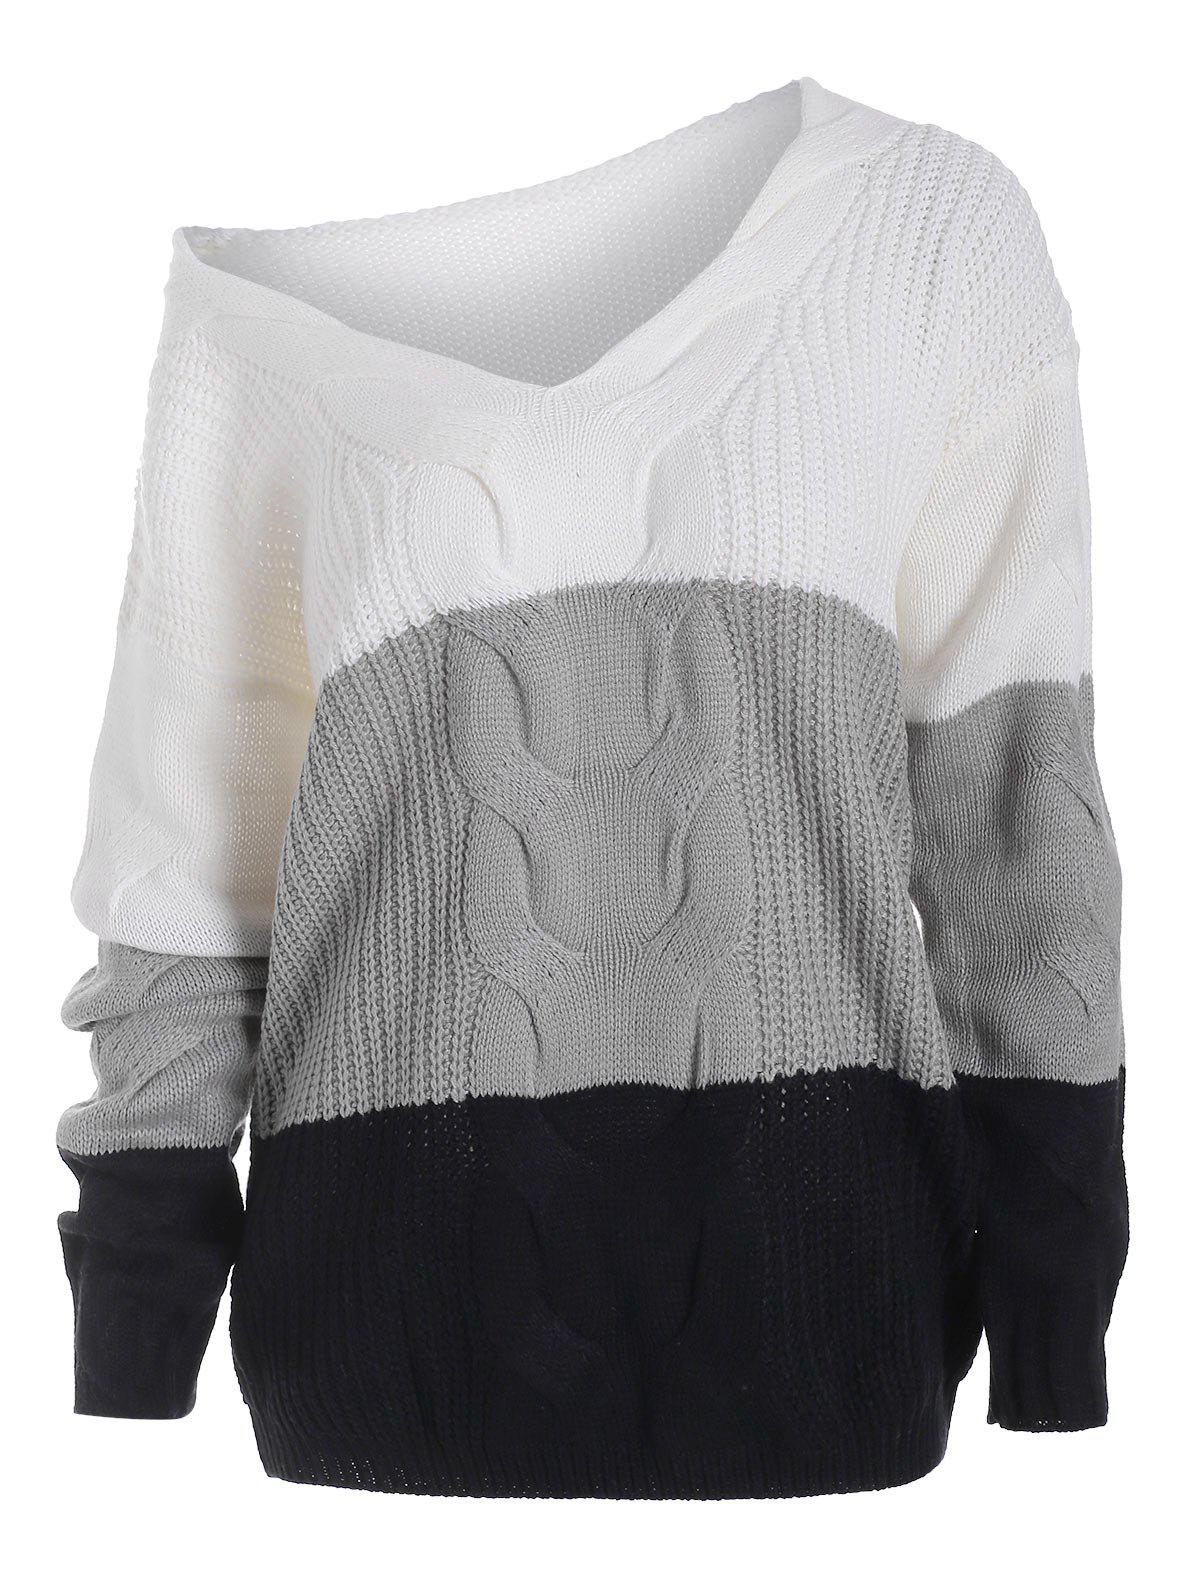 New V Neck Cable Knit Colorblock Sweater